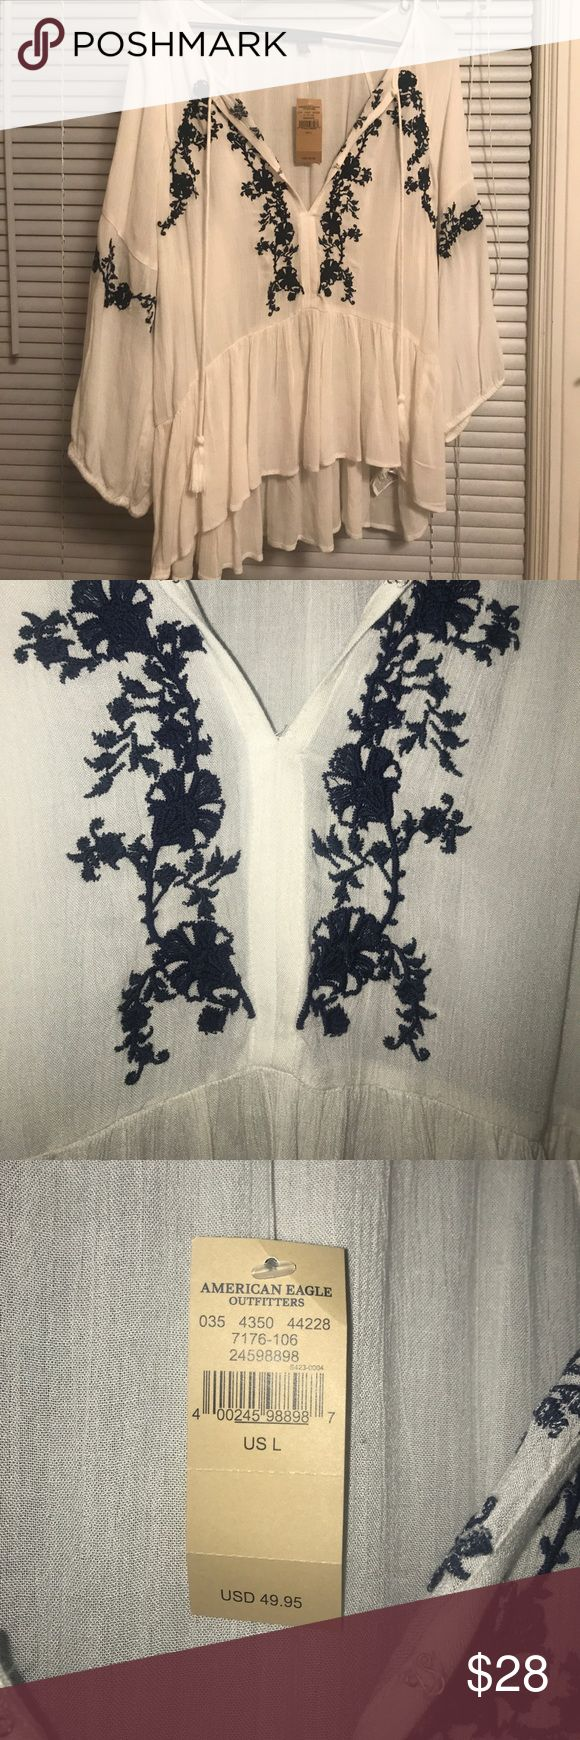 Never worn American Eagle shirt This is a beautiful top! Never worn, no flaws!! Navy blue embroidery :-) American Eagle Outfitters Tops Blouses